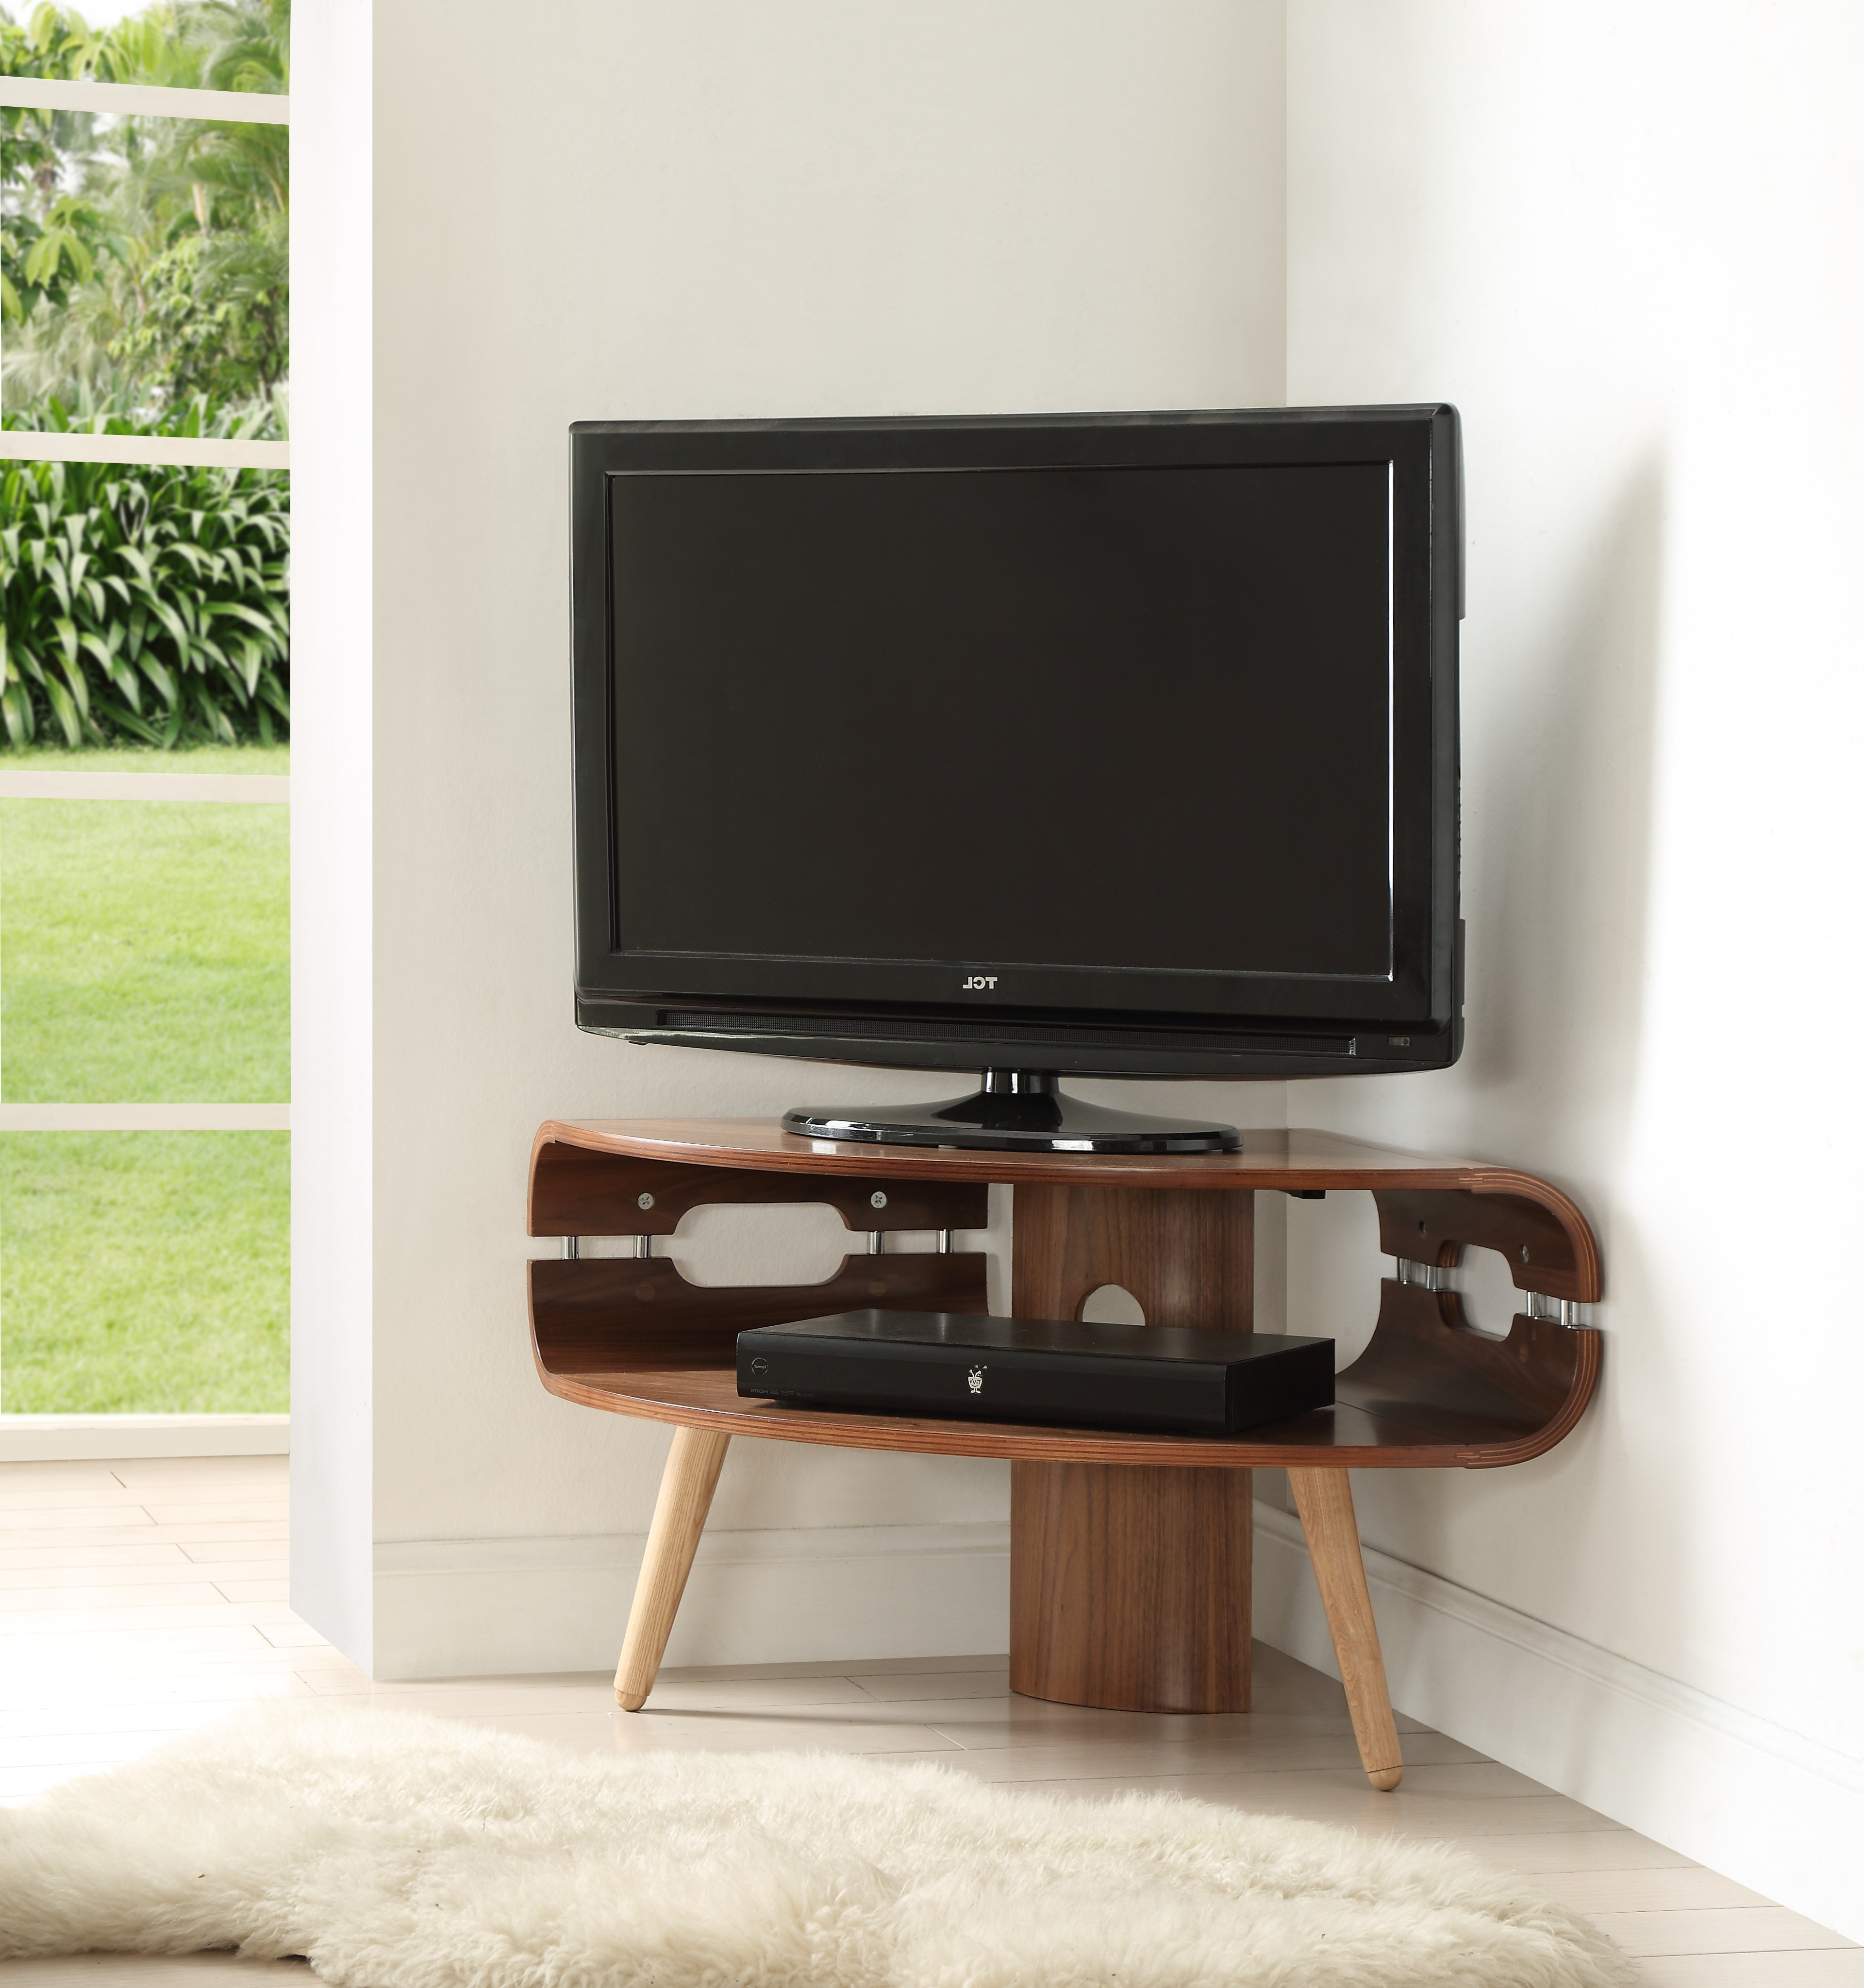 Oak Tv Stand Walmart Solid Wood Stands For Flat Screens Light Pertaining To Best And Newest Triangular Tv Stands (Gallery 7 of 20)